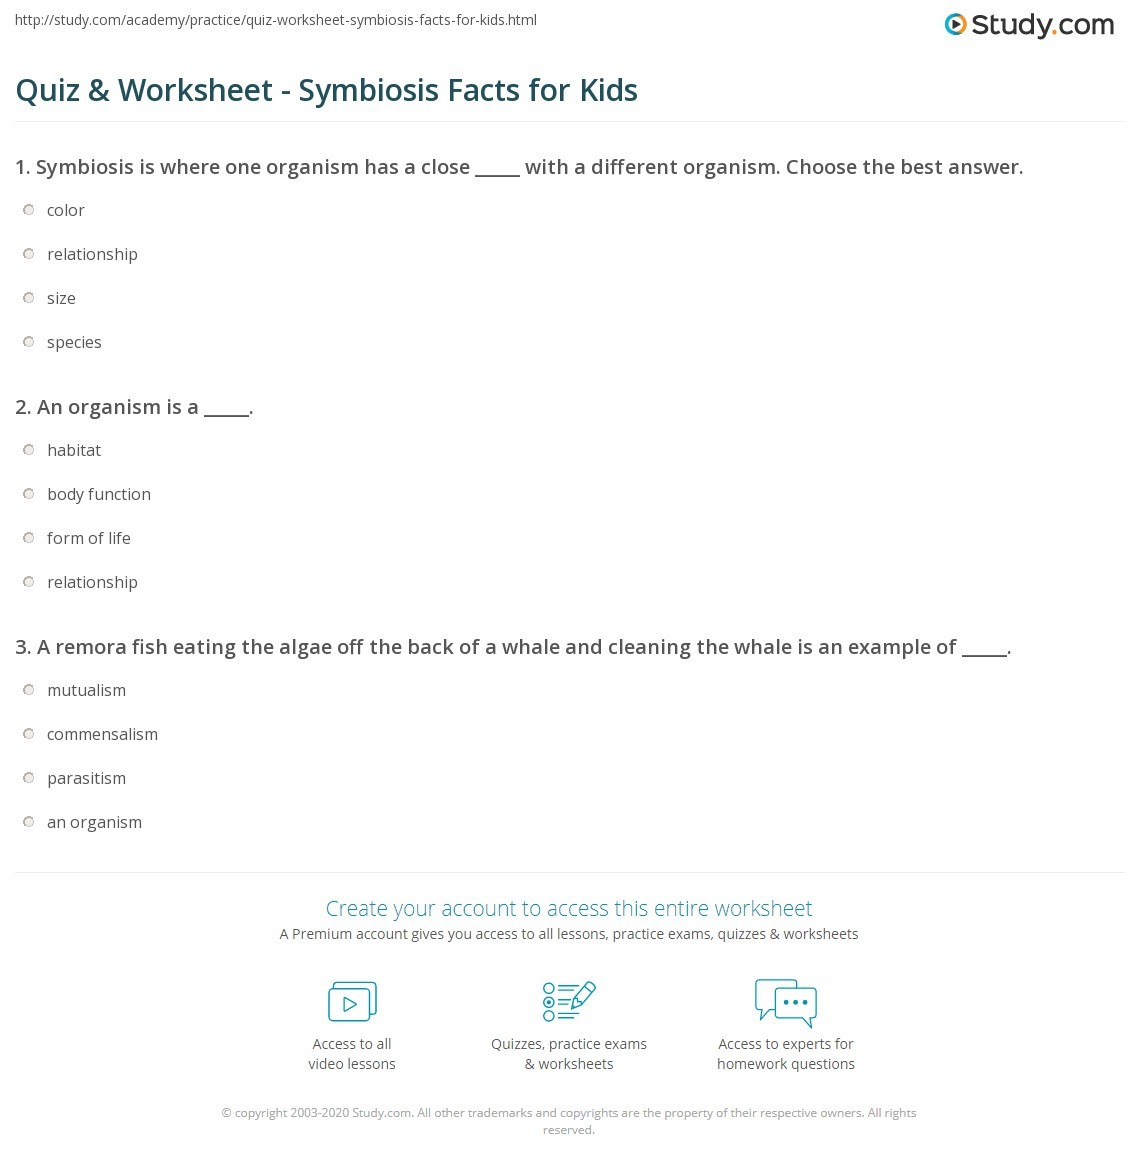 Symbiotic Relationships Worksheet Answers Quiz & Worksheet Symbiosis Facts for Kids